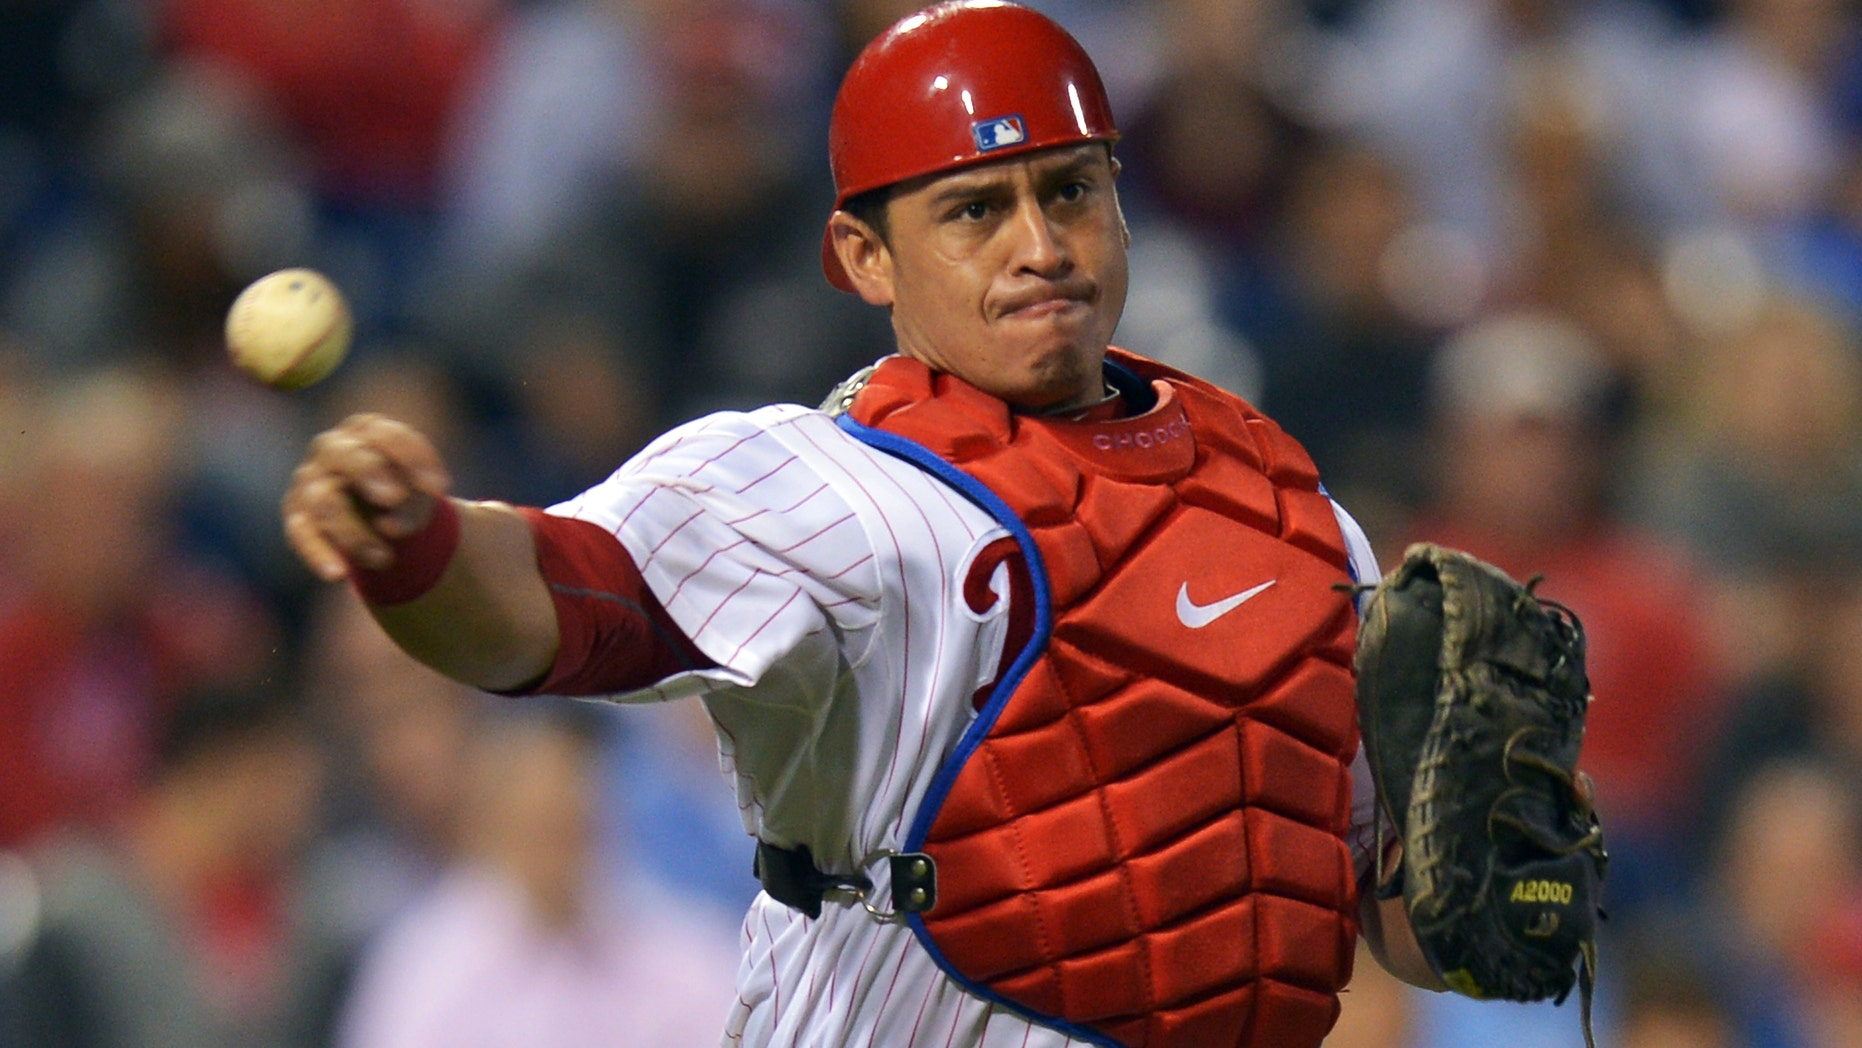 Carlos Ruiz #51 of the Philadelphia Phillies makes a throw to first base during the game against the Washington Nationals at Citizens Bank Park on September 25, 2012 in Philadelphia, Pennsylvania. (Photo by Drew Hallowell/Getty Images)